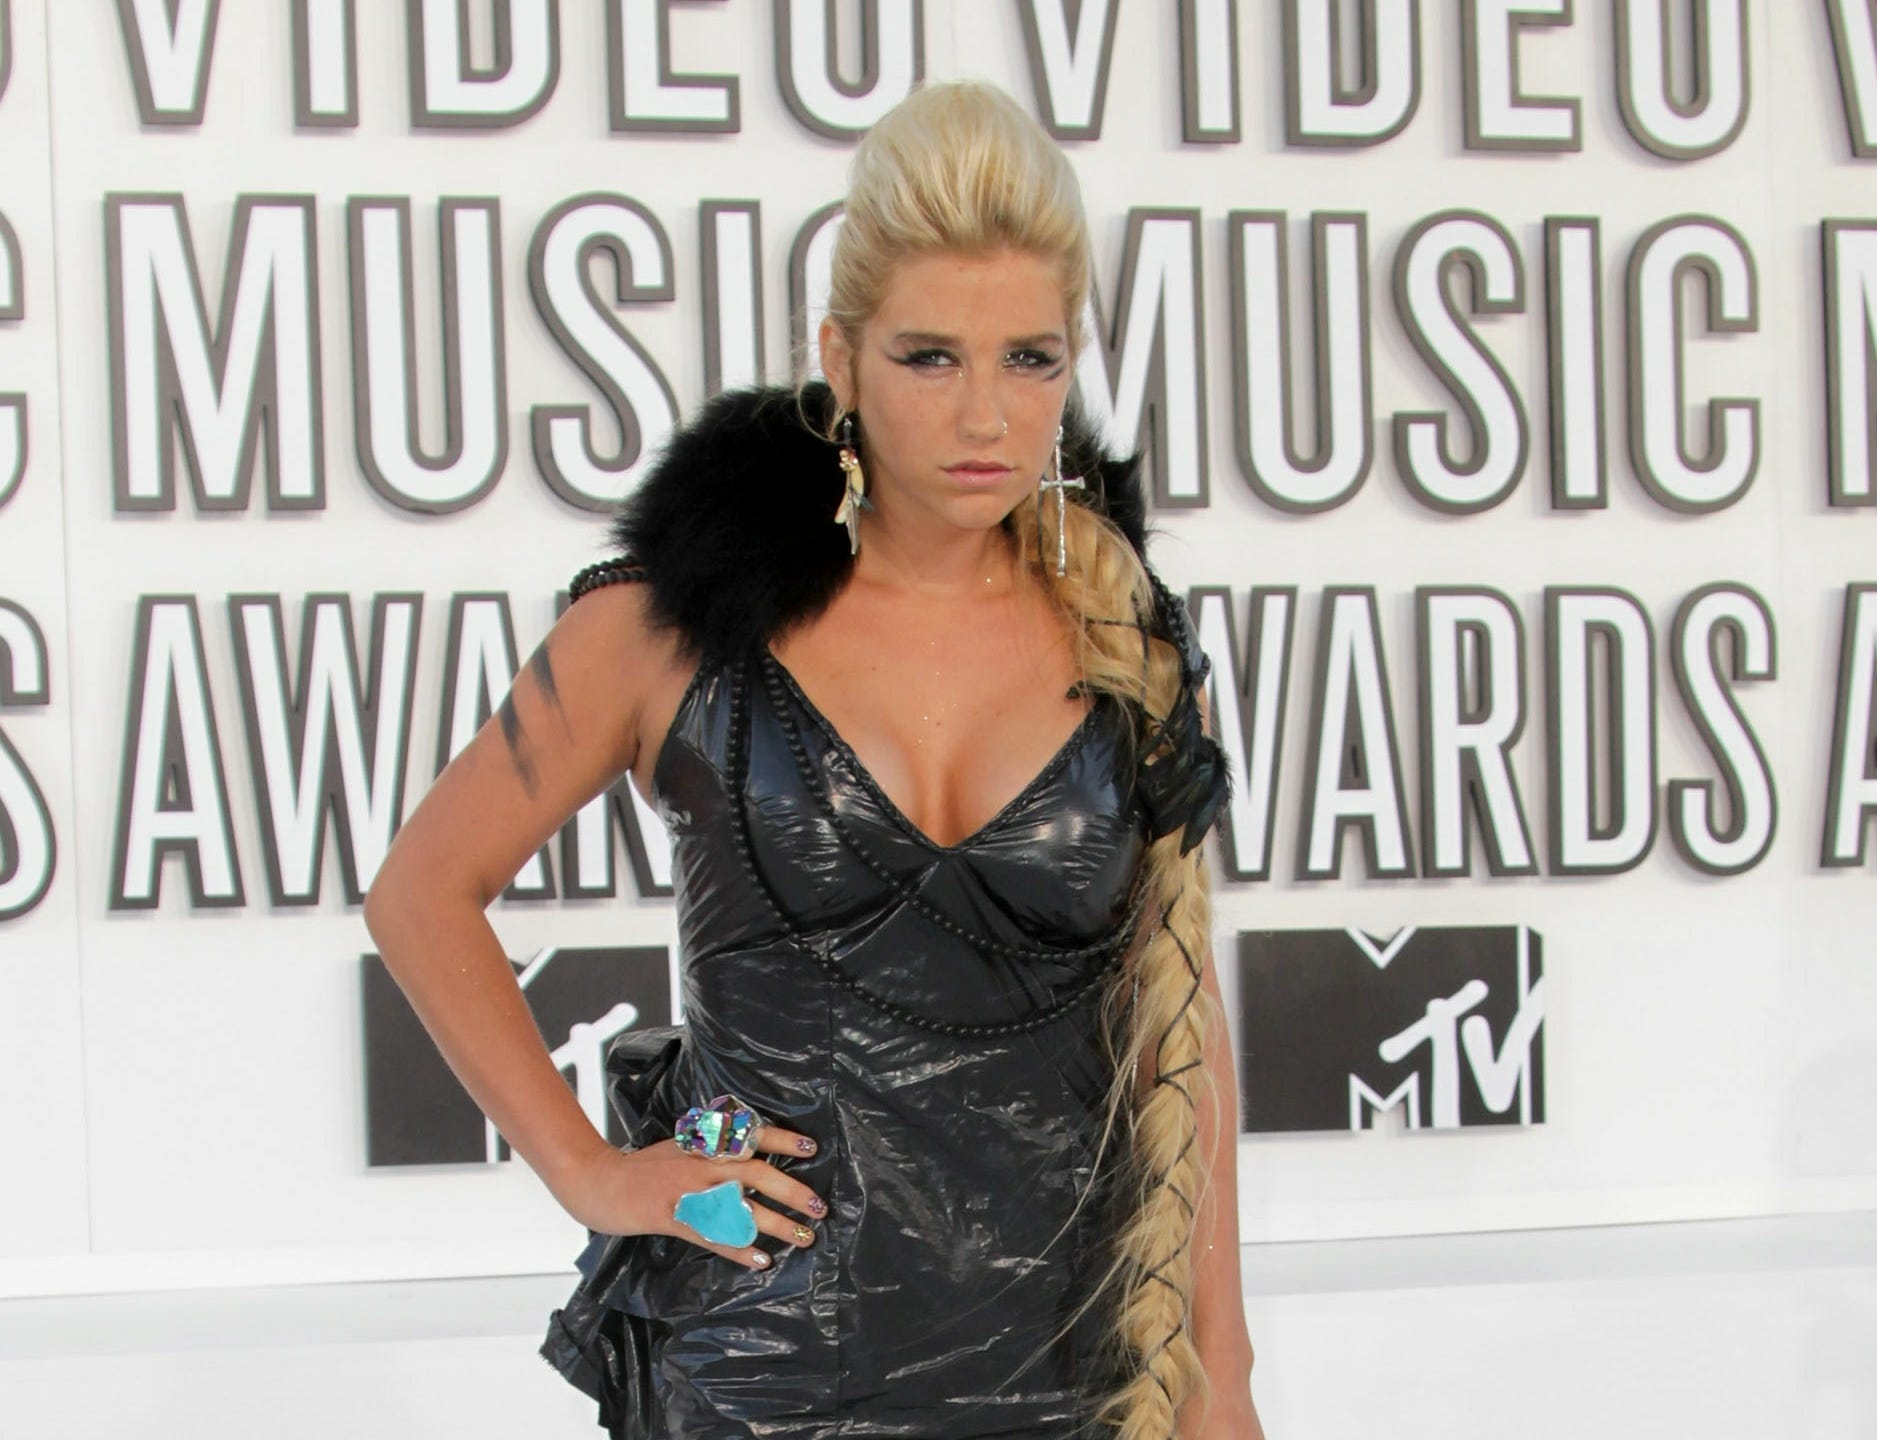 Kesha arrives at the 2010 MTV Video Music Awards on September 12, 2010 in Los Angeles, California.